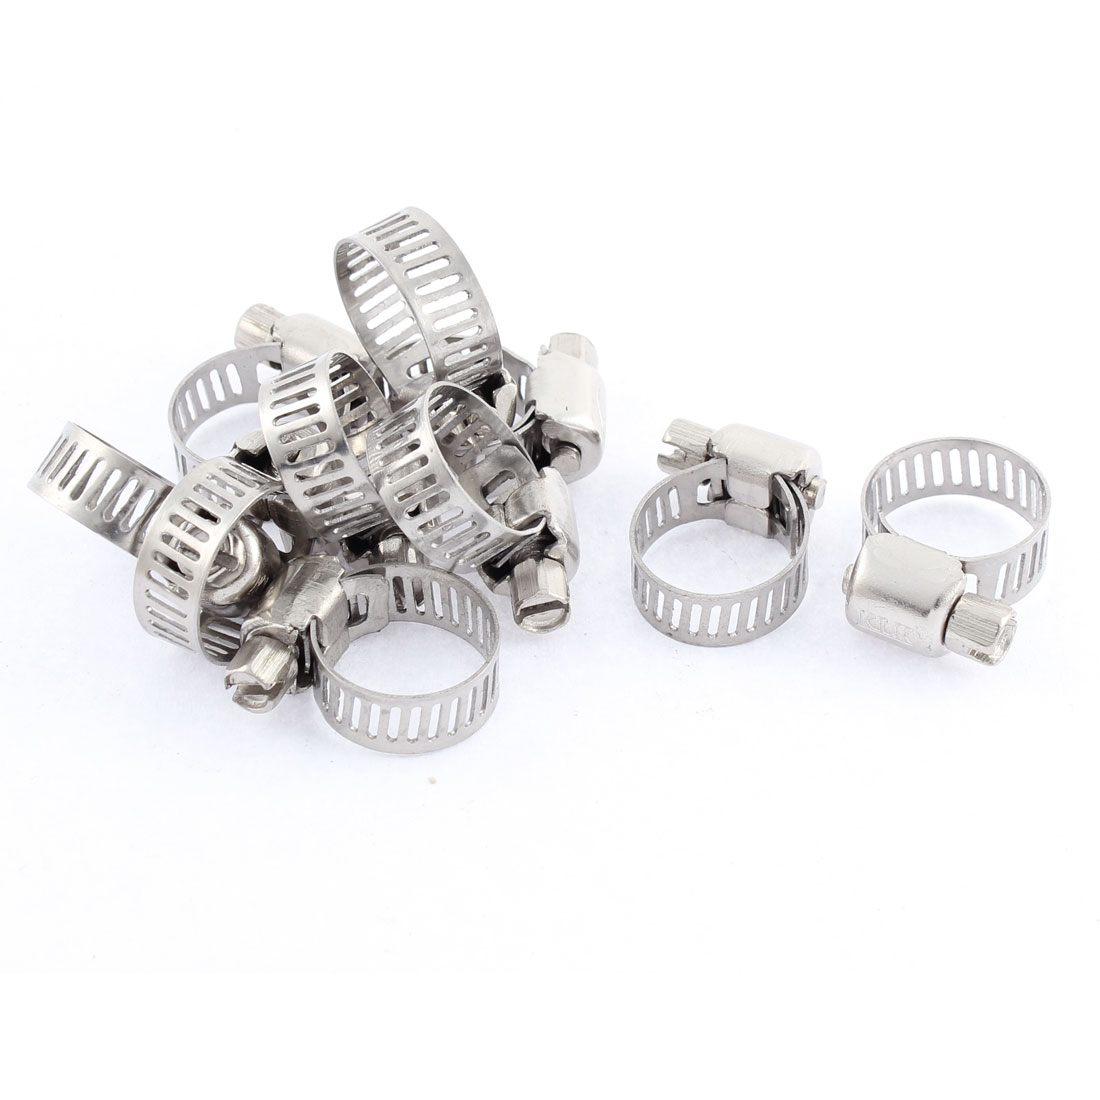 Adjustable 10mm-16mm Range Band Stainless Steel Worm Hose Clip Clamp 10 Pcs